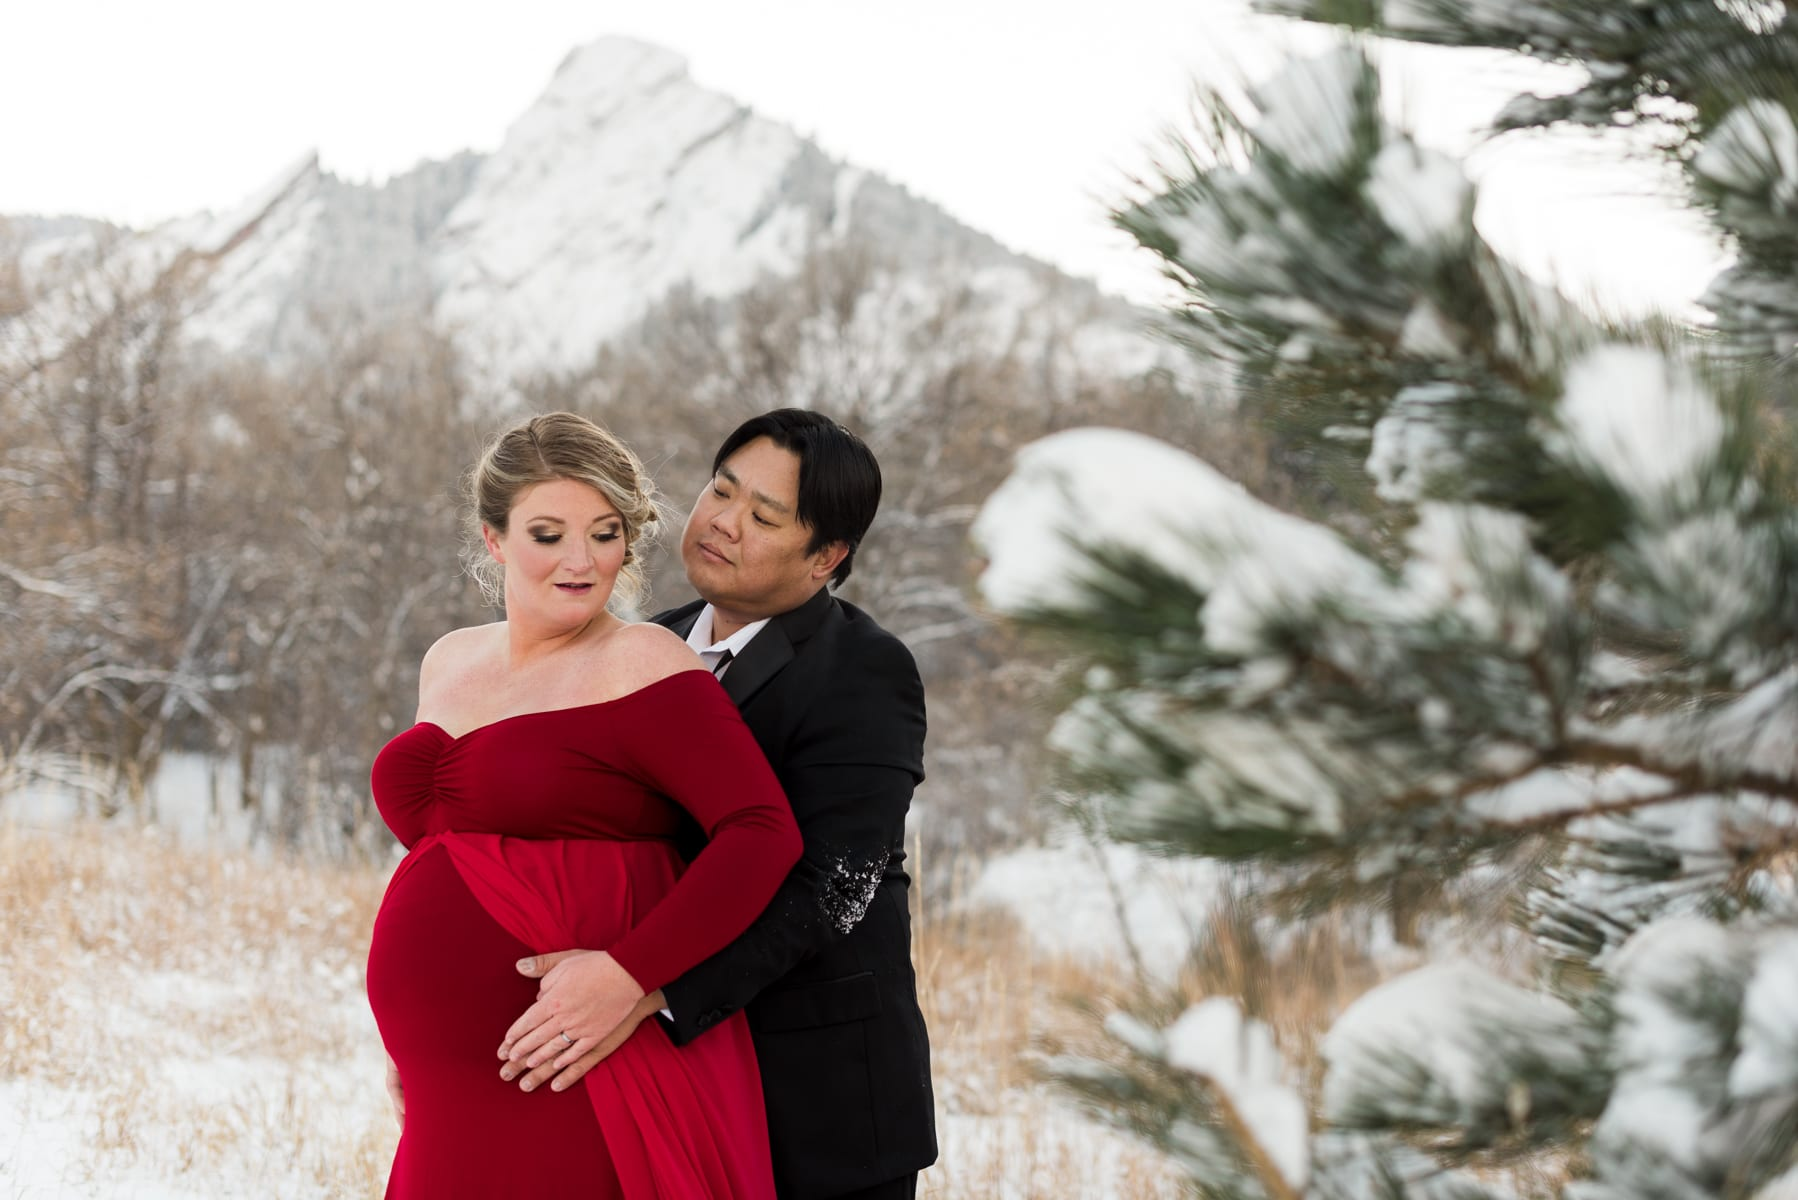 Winter Wonderland Maternity Shoot | Maternity Photography | Chautauqua Park | From The Hip Photo